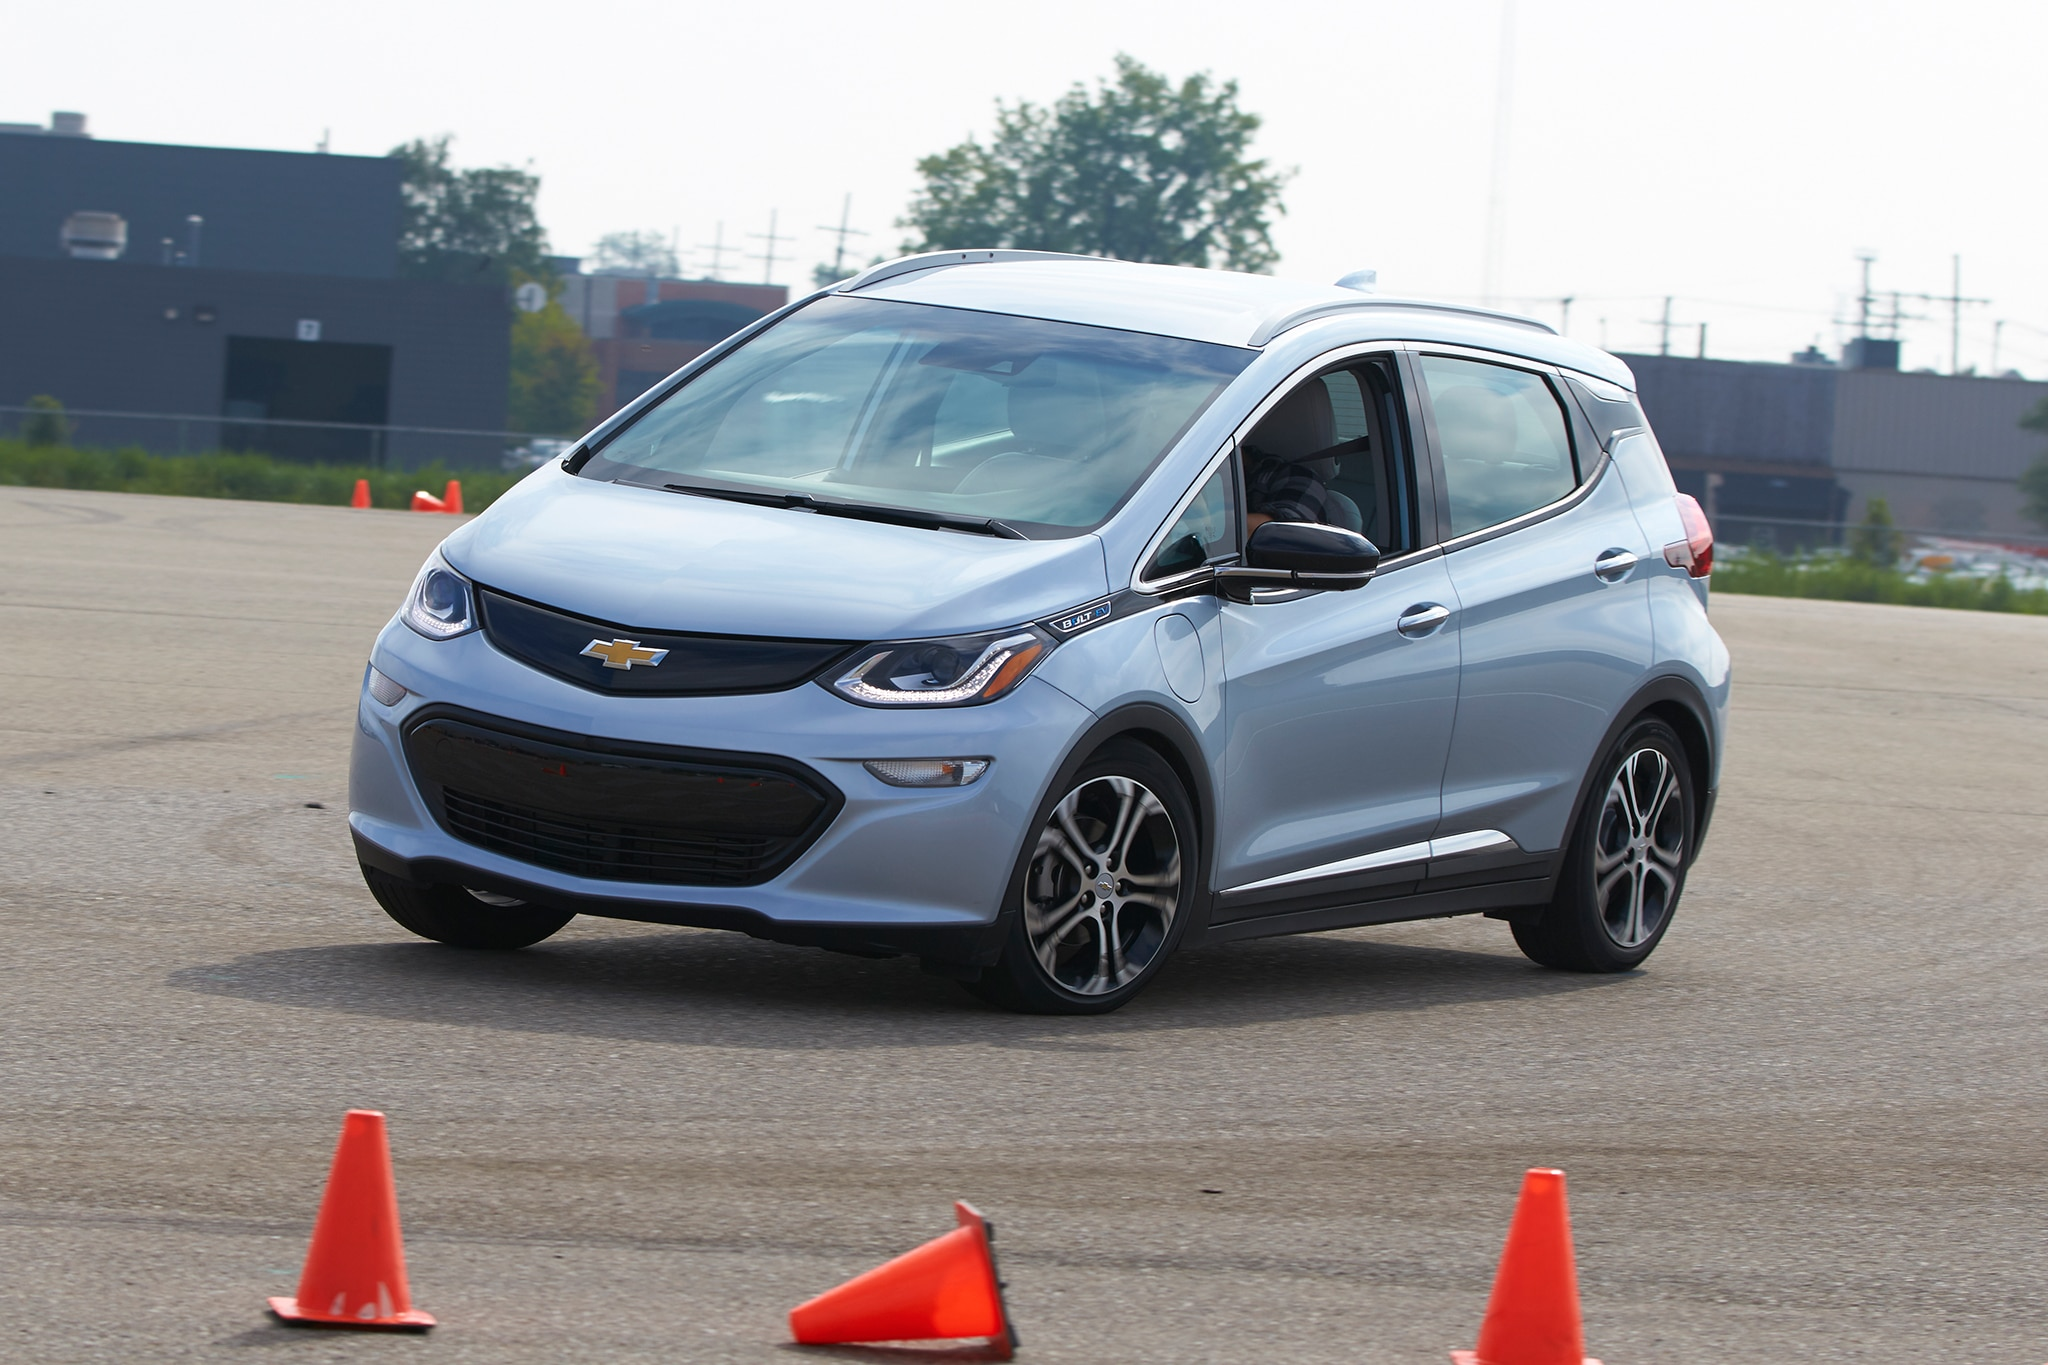 2017 Chevrolet Bolt EV Front Three Quarter In Motion 06